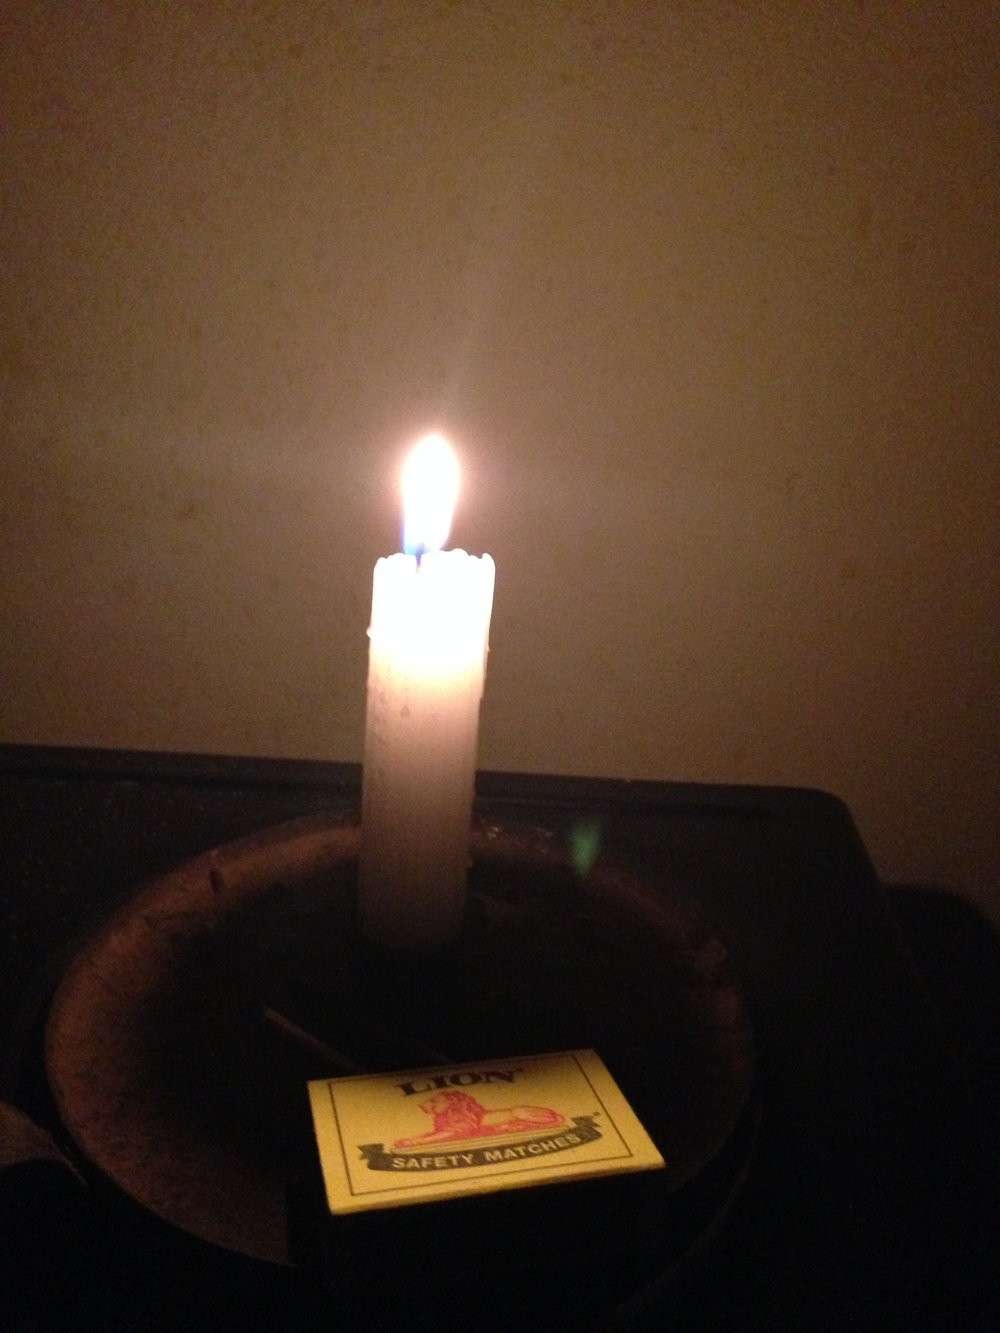 Illumination  - A gifted candle during a power outage from my Host Mama, KZN, South Africa